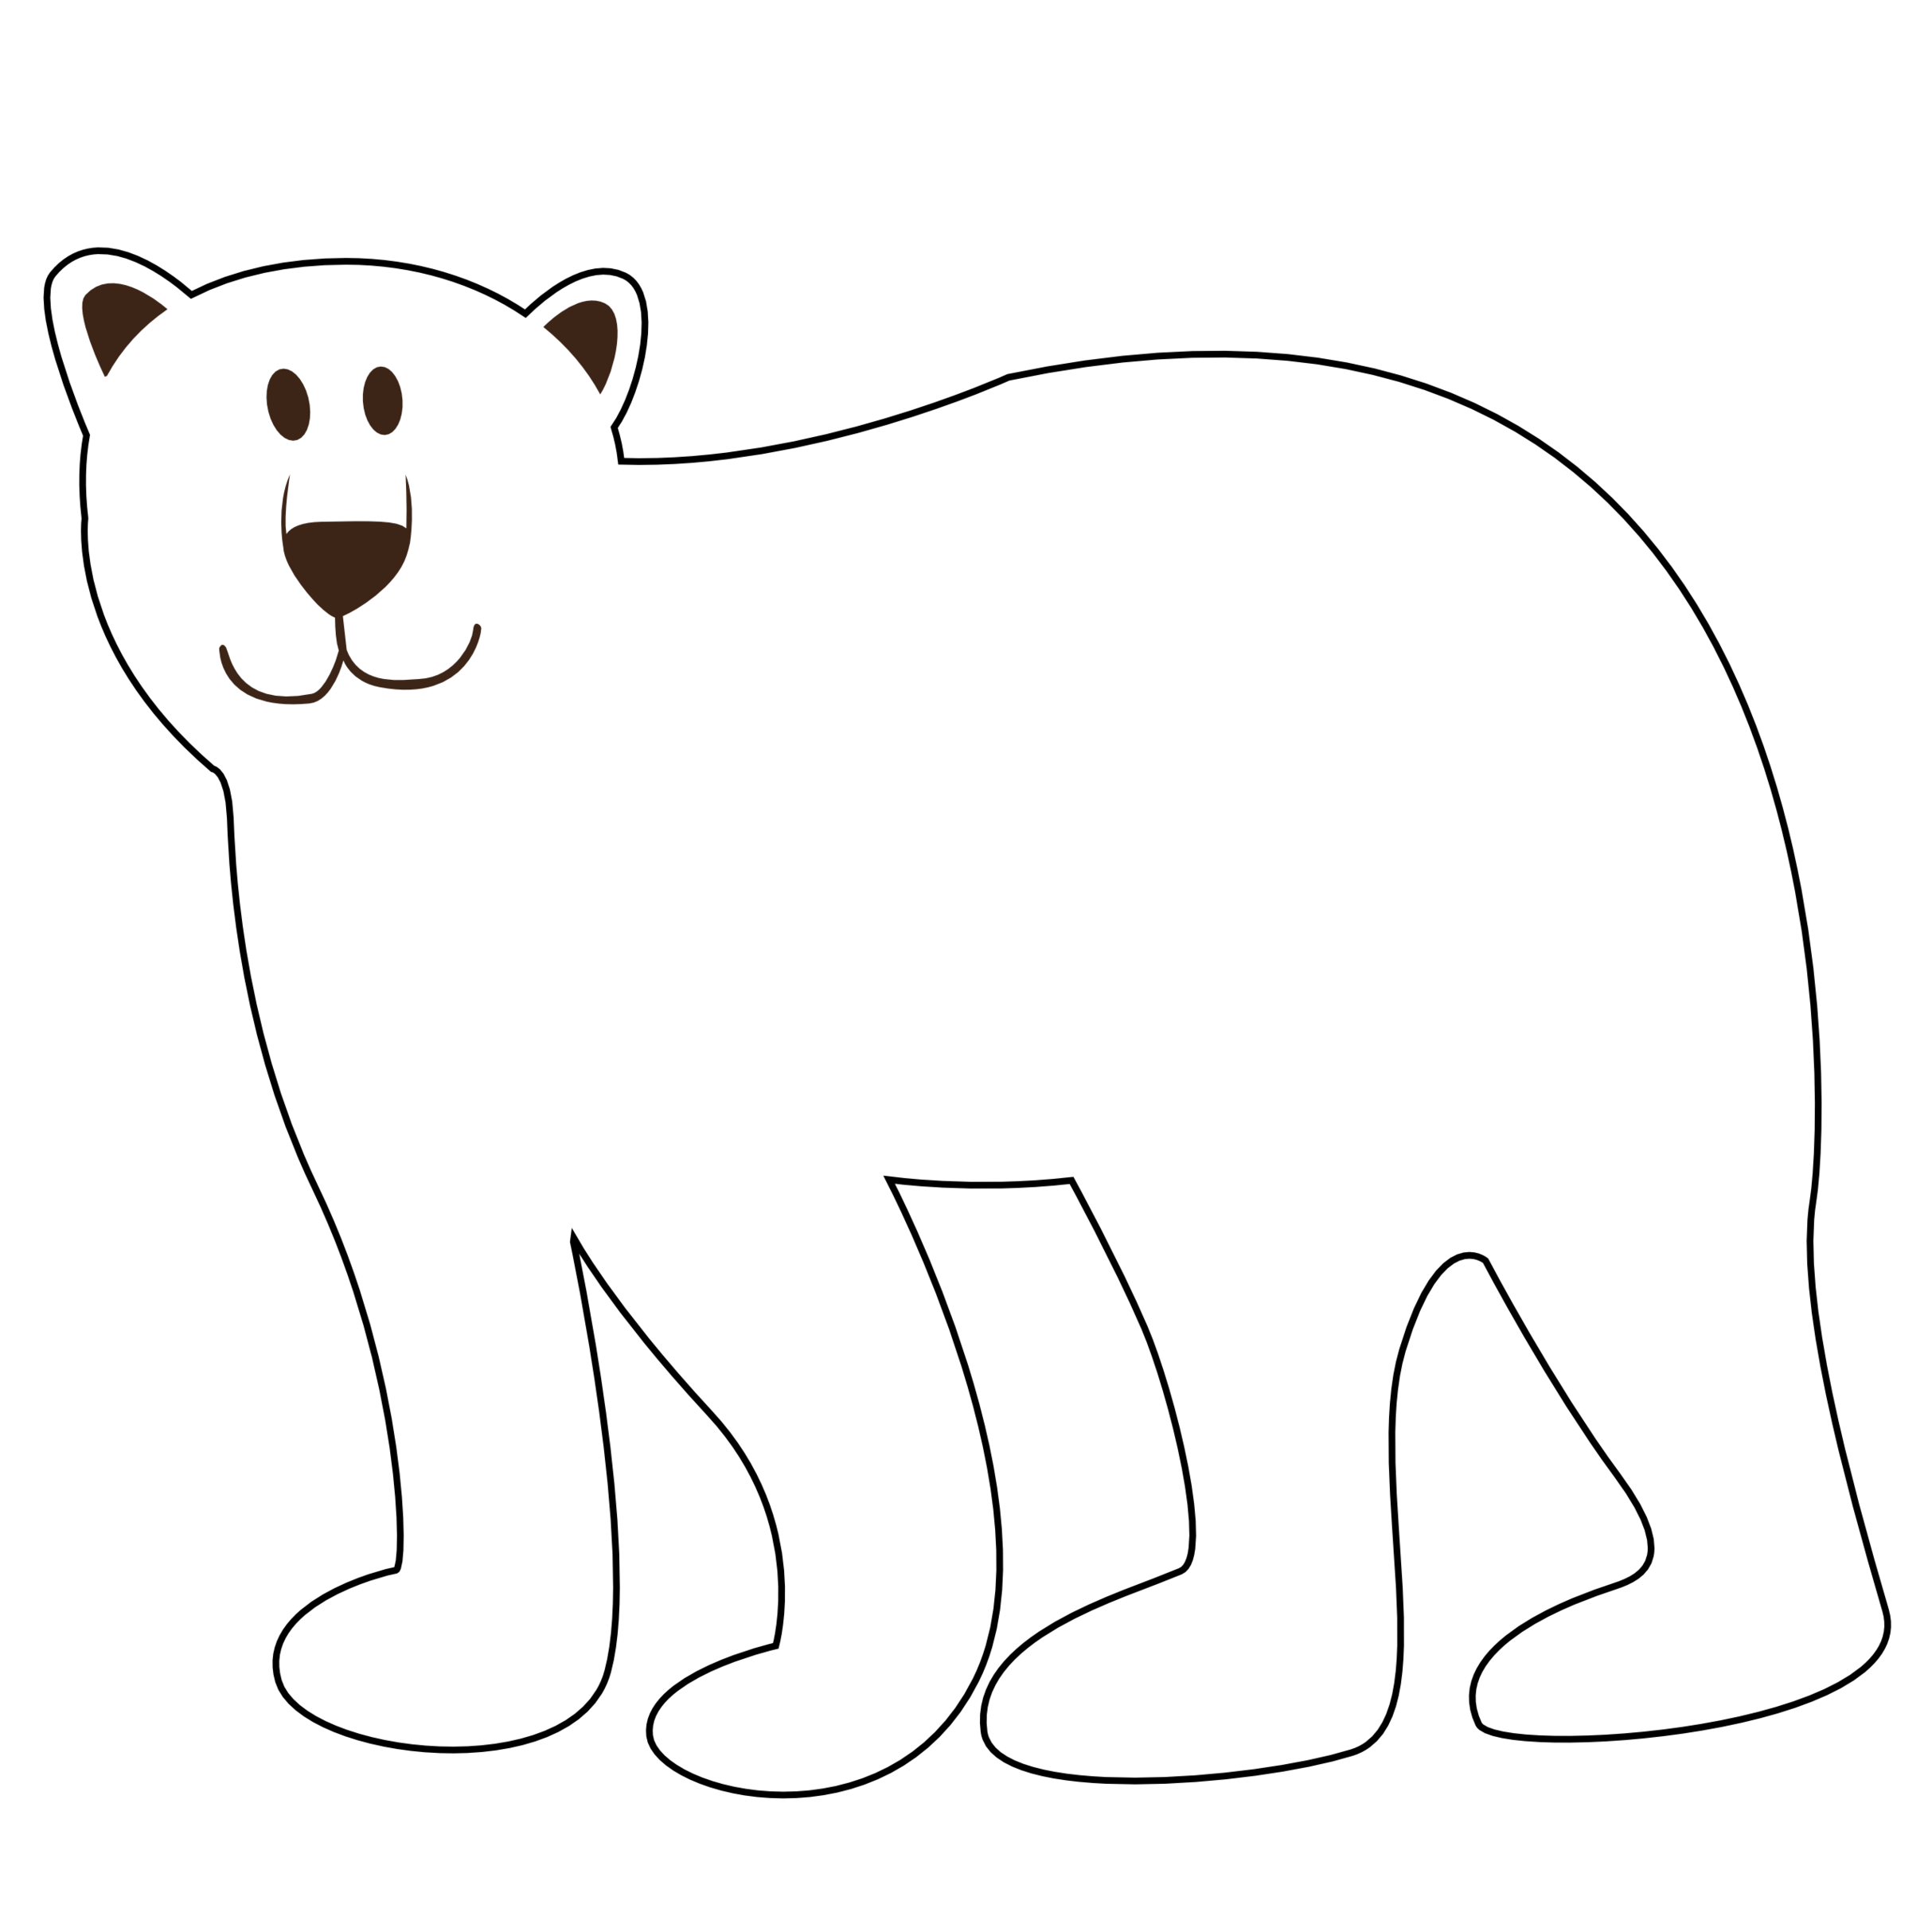 Polar bear clipart black and white png transparent Bear black and white polar bear black and white clipart ... png transparent